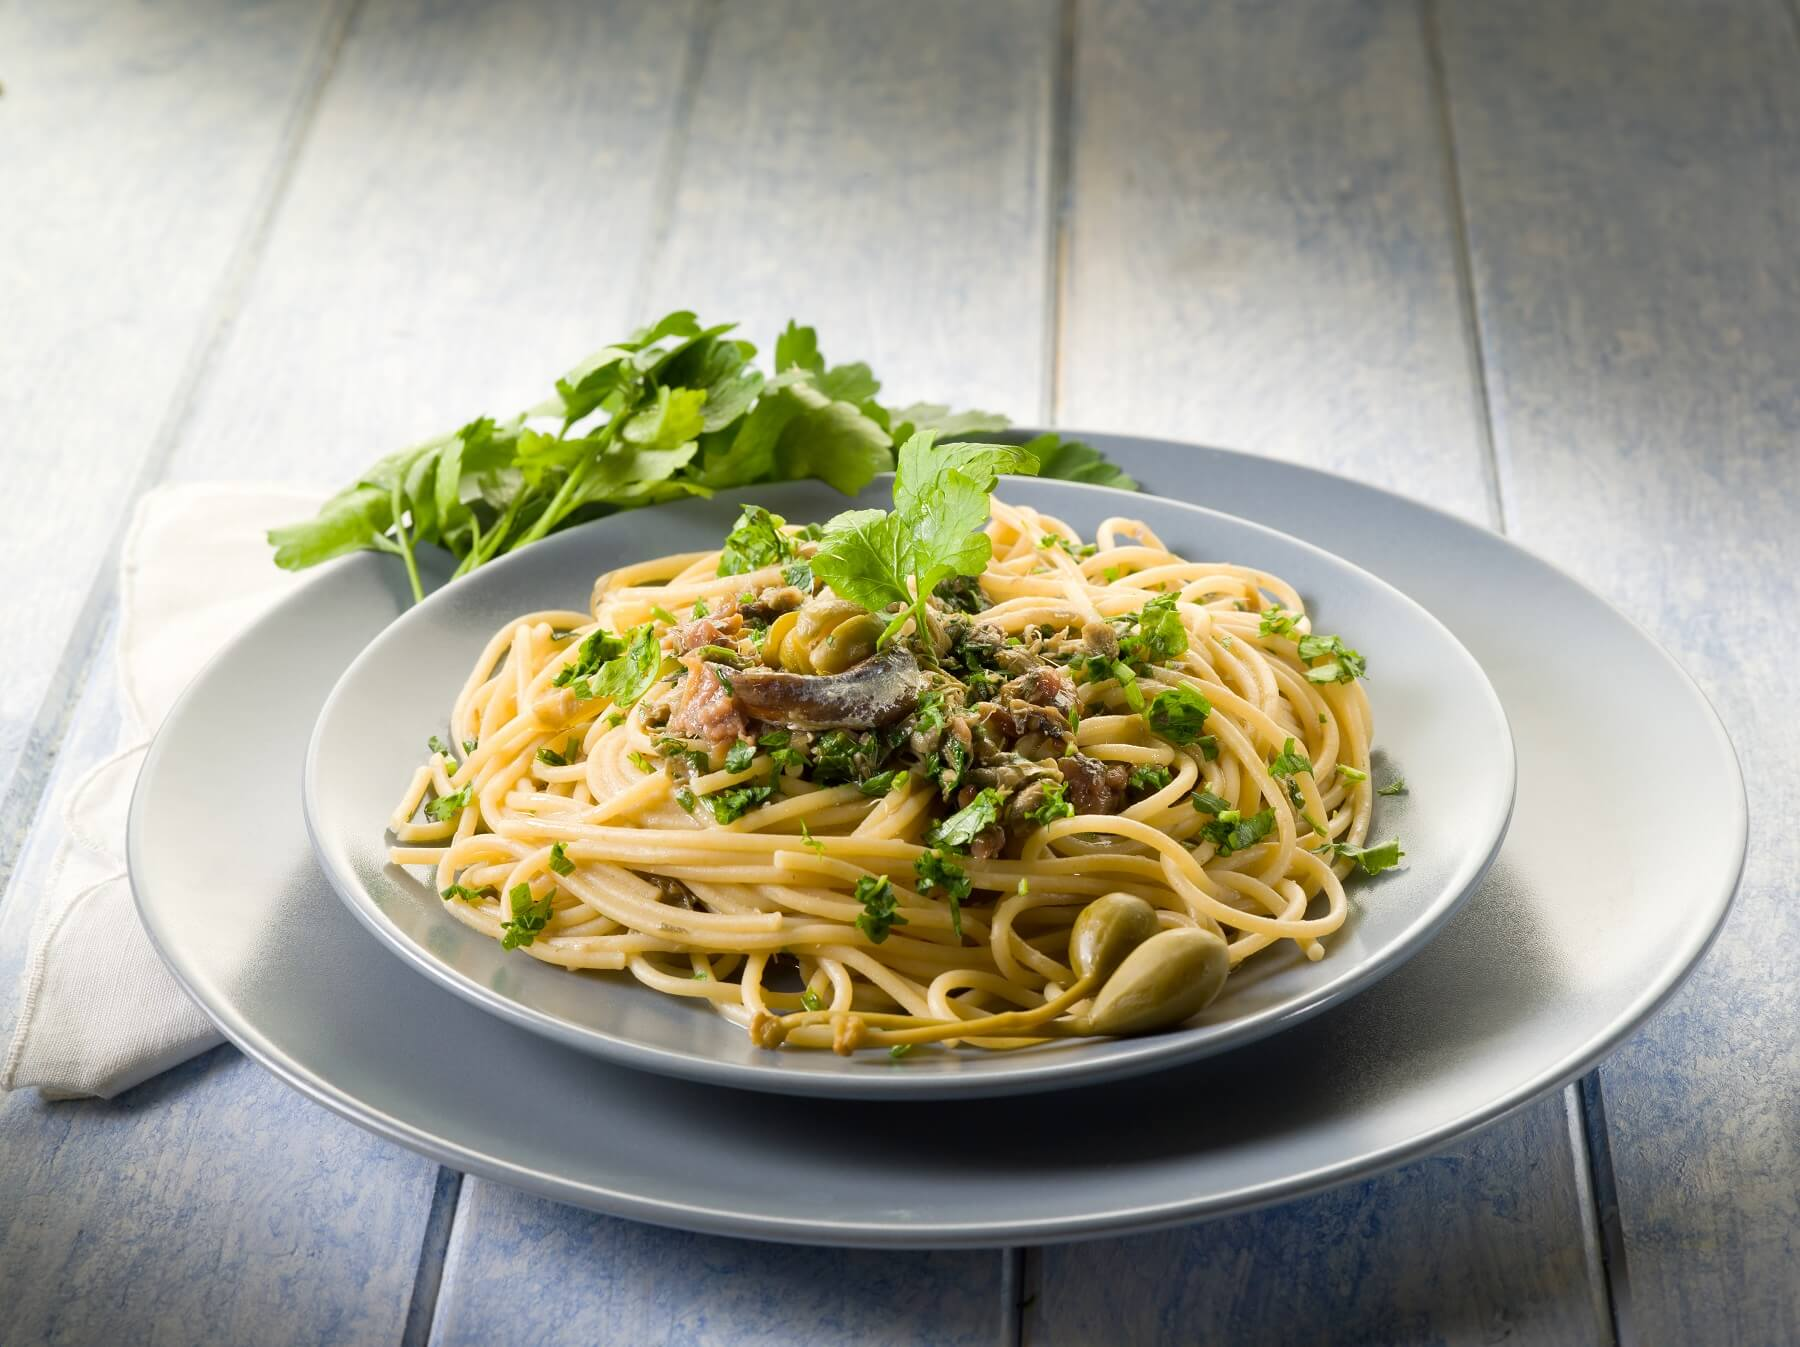 Spaghetti with Kale and Anchovies Recipe